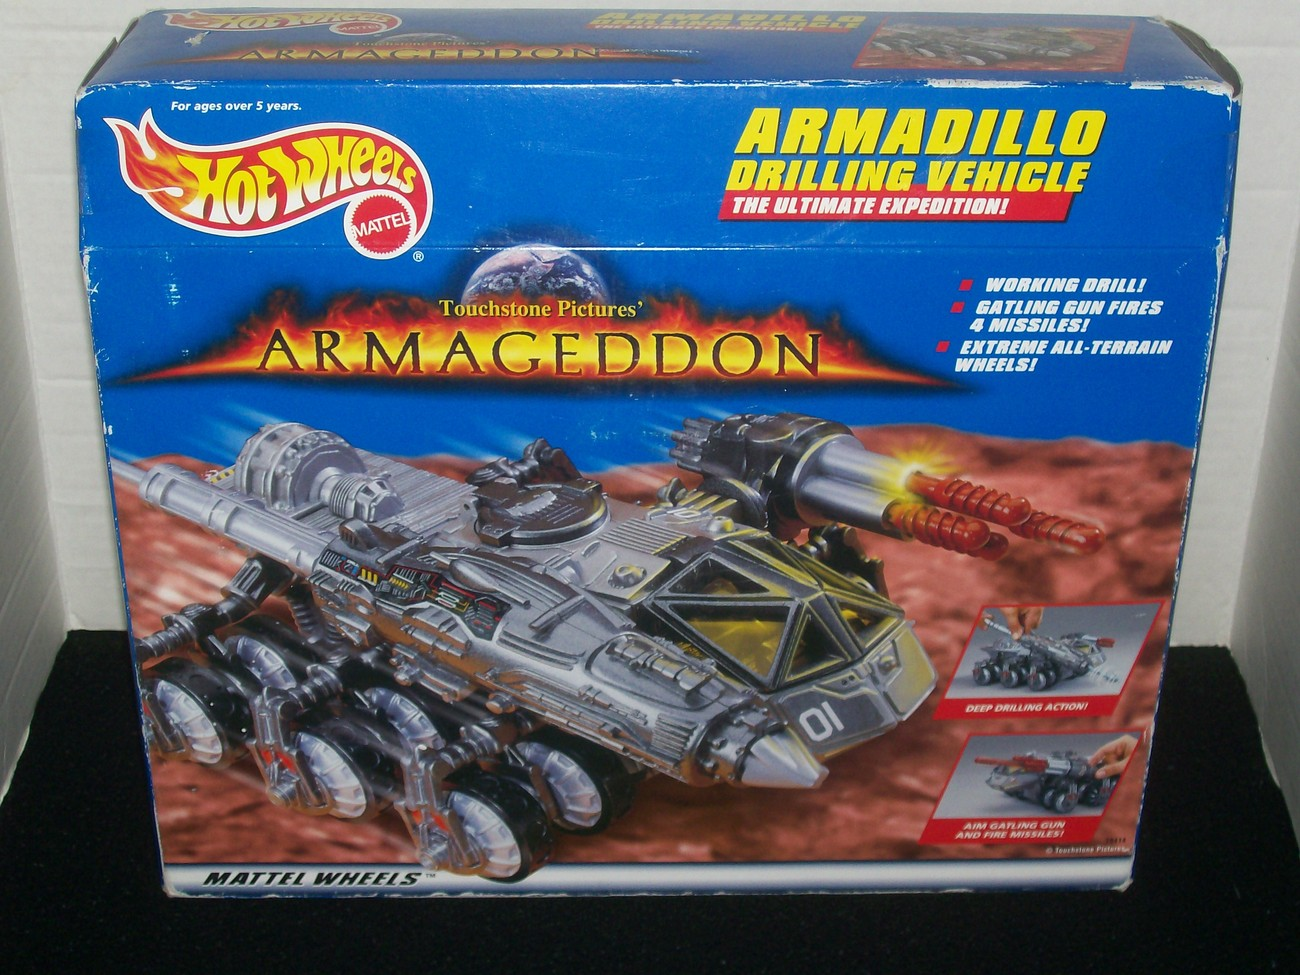 Primary image for HOT WHEELS ARMAGEDDON ARMADILLO DRILLING VEHICLE BIG